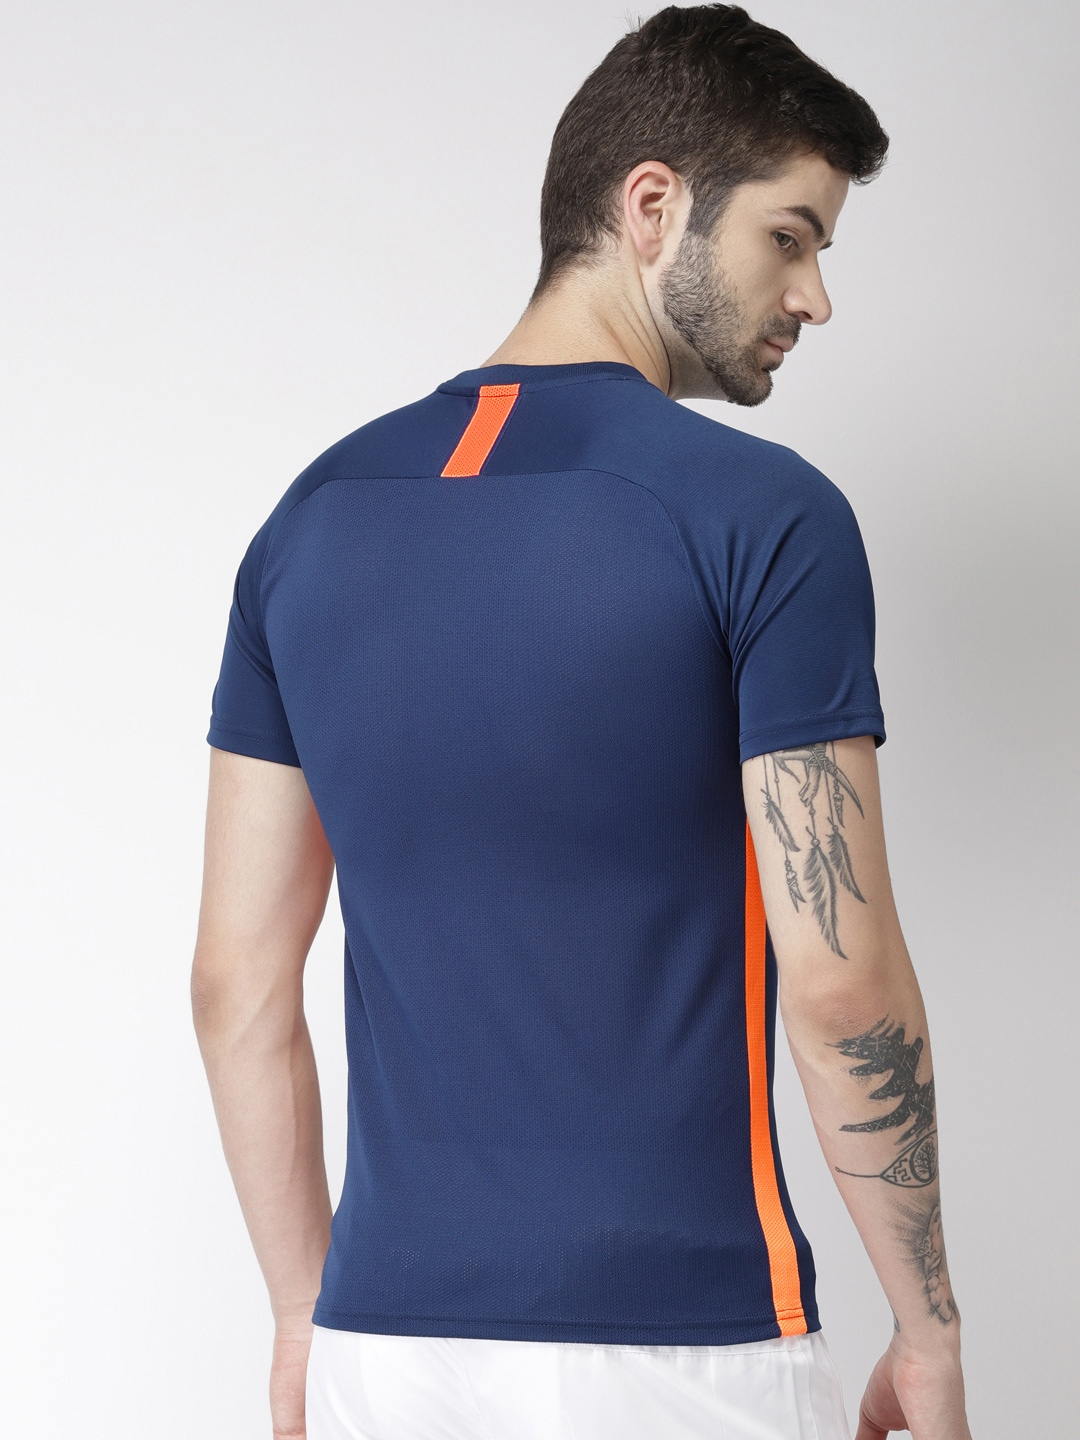 d50ba0717 Nike TShirts - Buy Nike T-shirts Online in India | Myntra